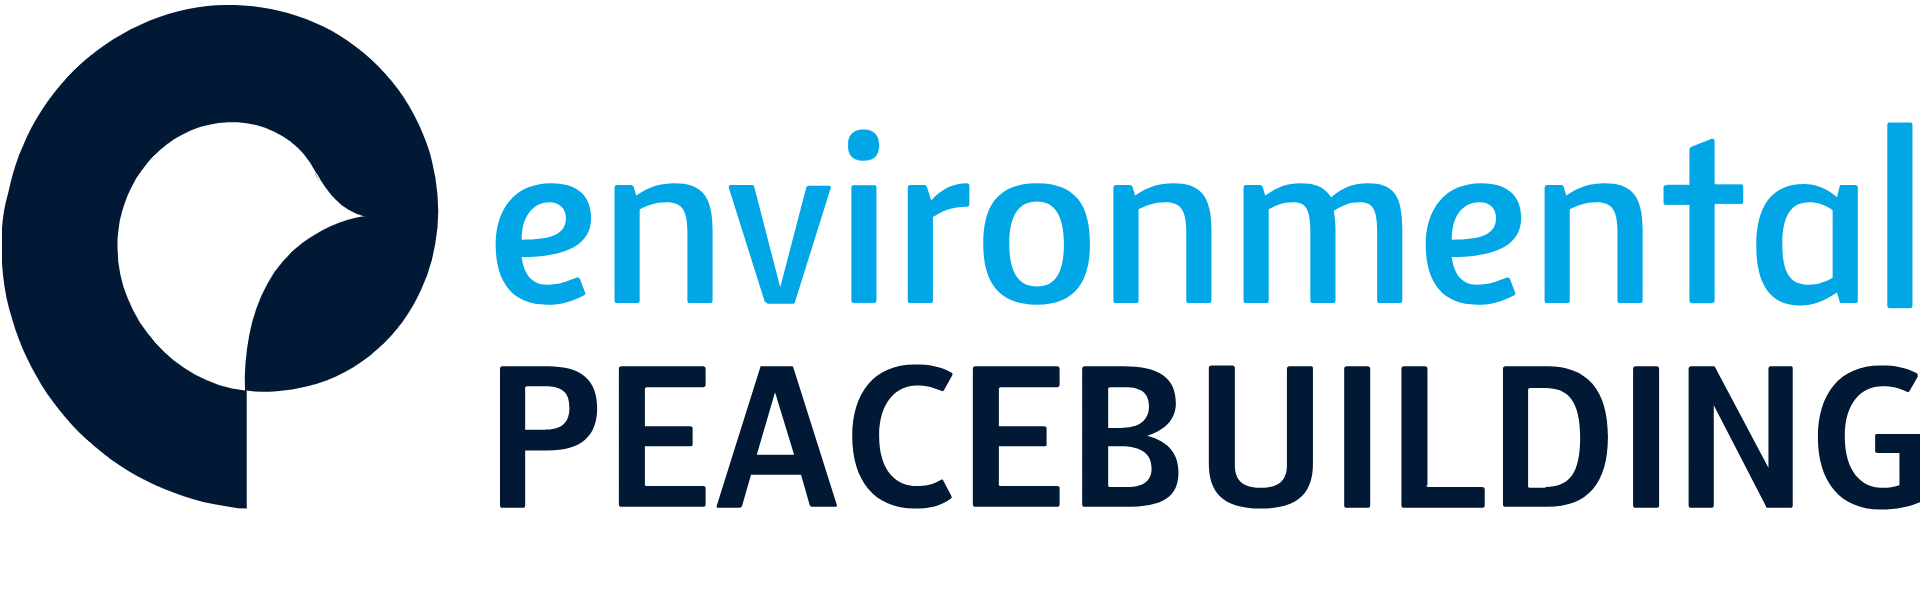 Environmental Peacebuilding logo